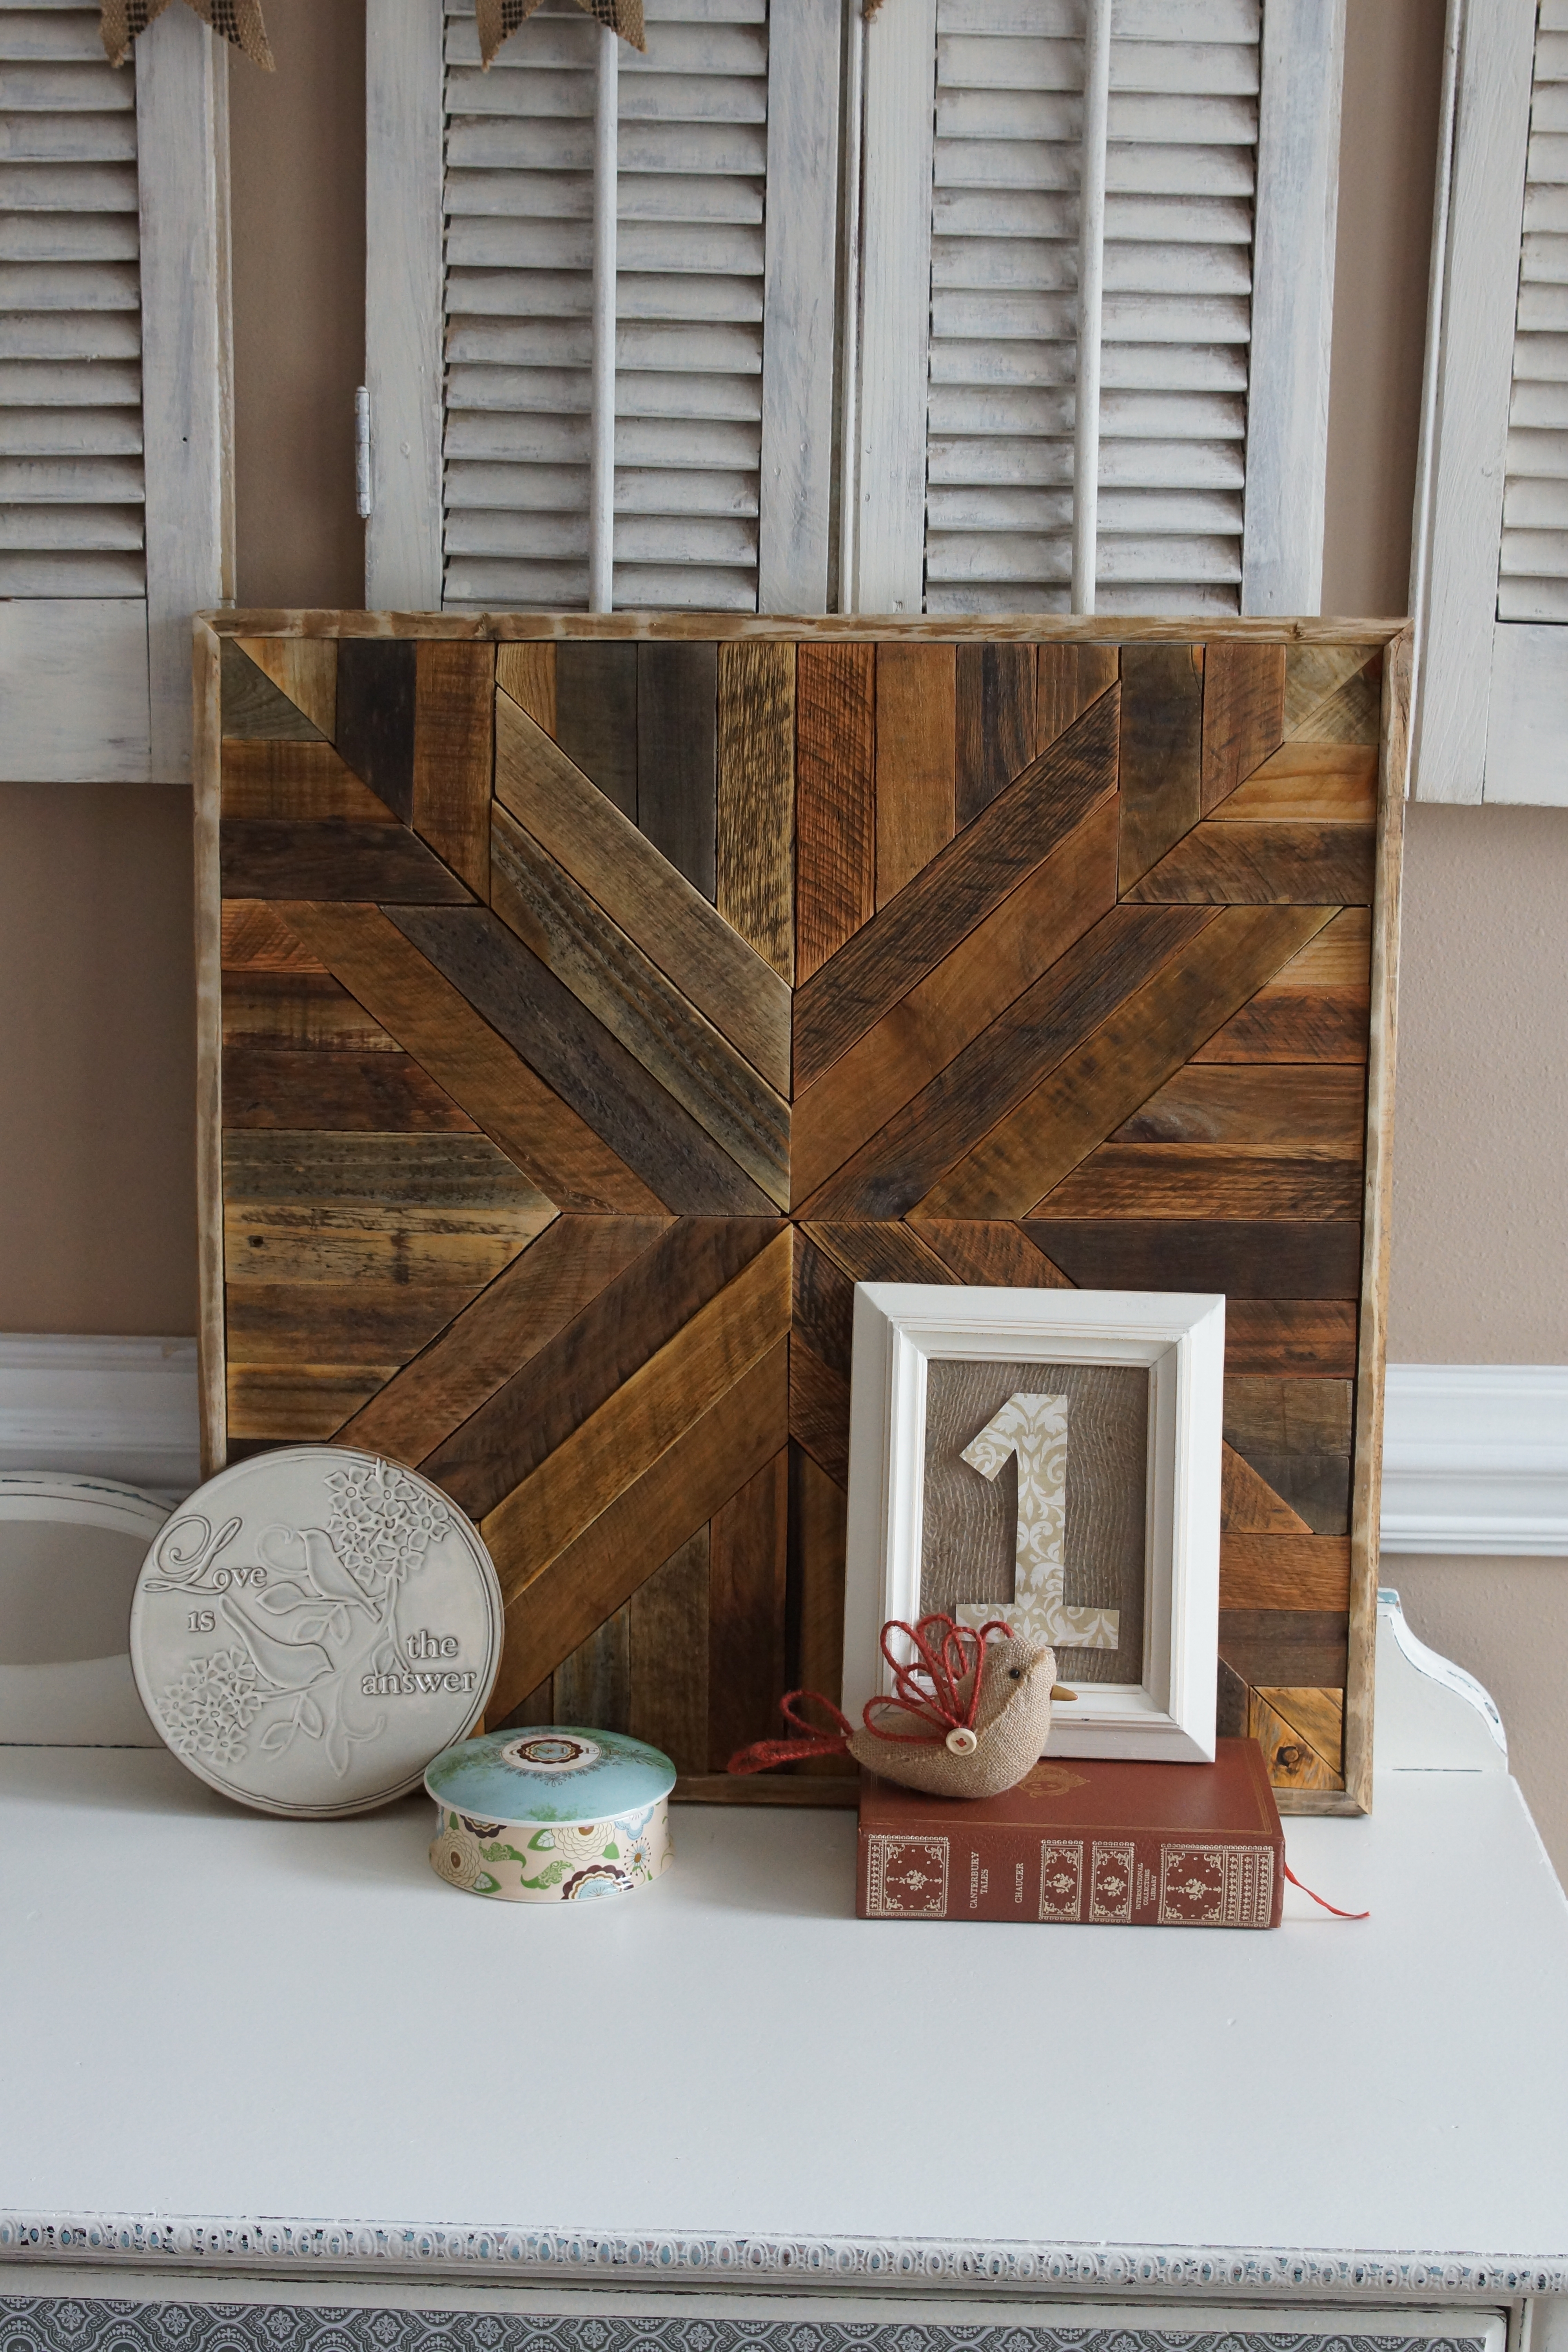 Pottery Barn Inspired – Reclaimed Wood Art | Wild Wood Chic throughout Pottery Barn Wall Art (Image 12 of 20)